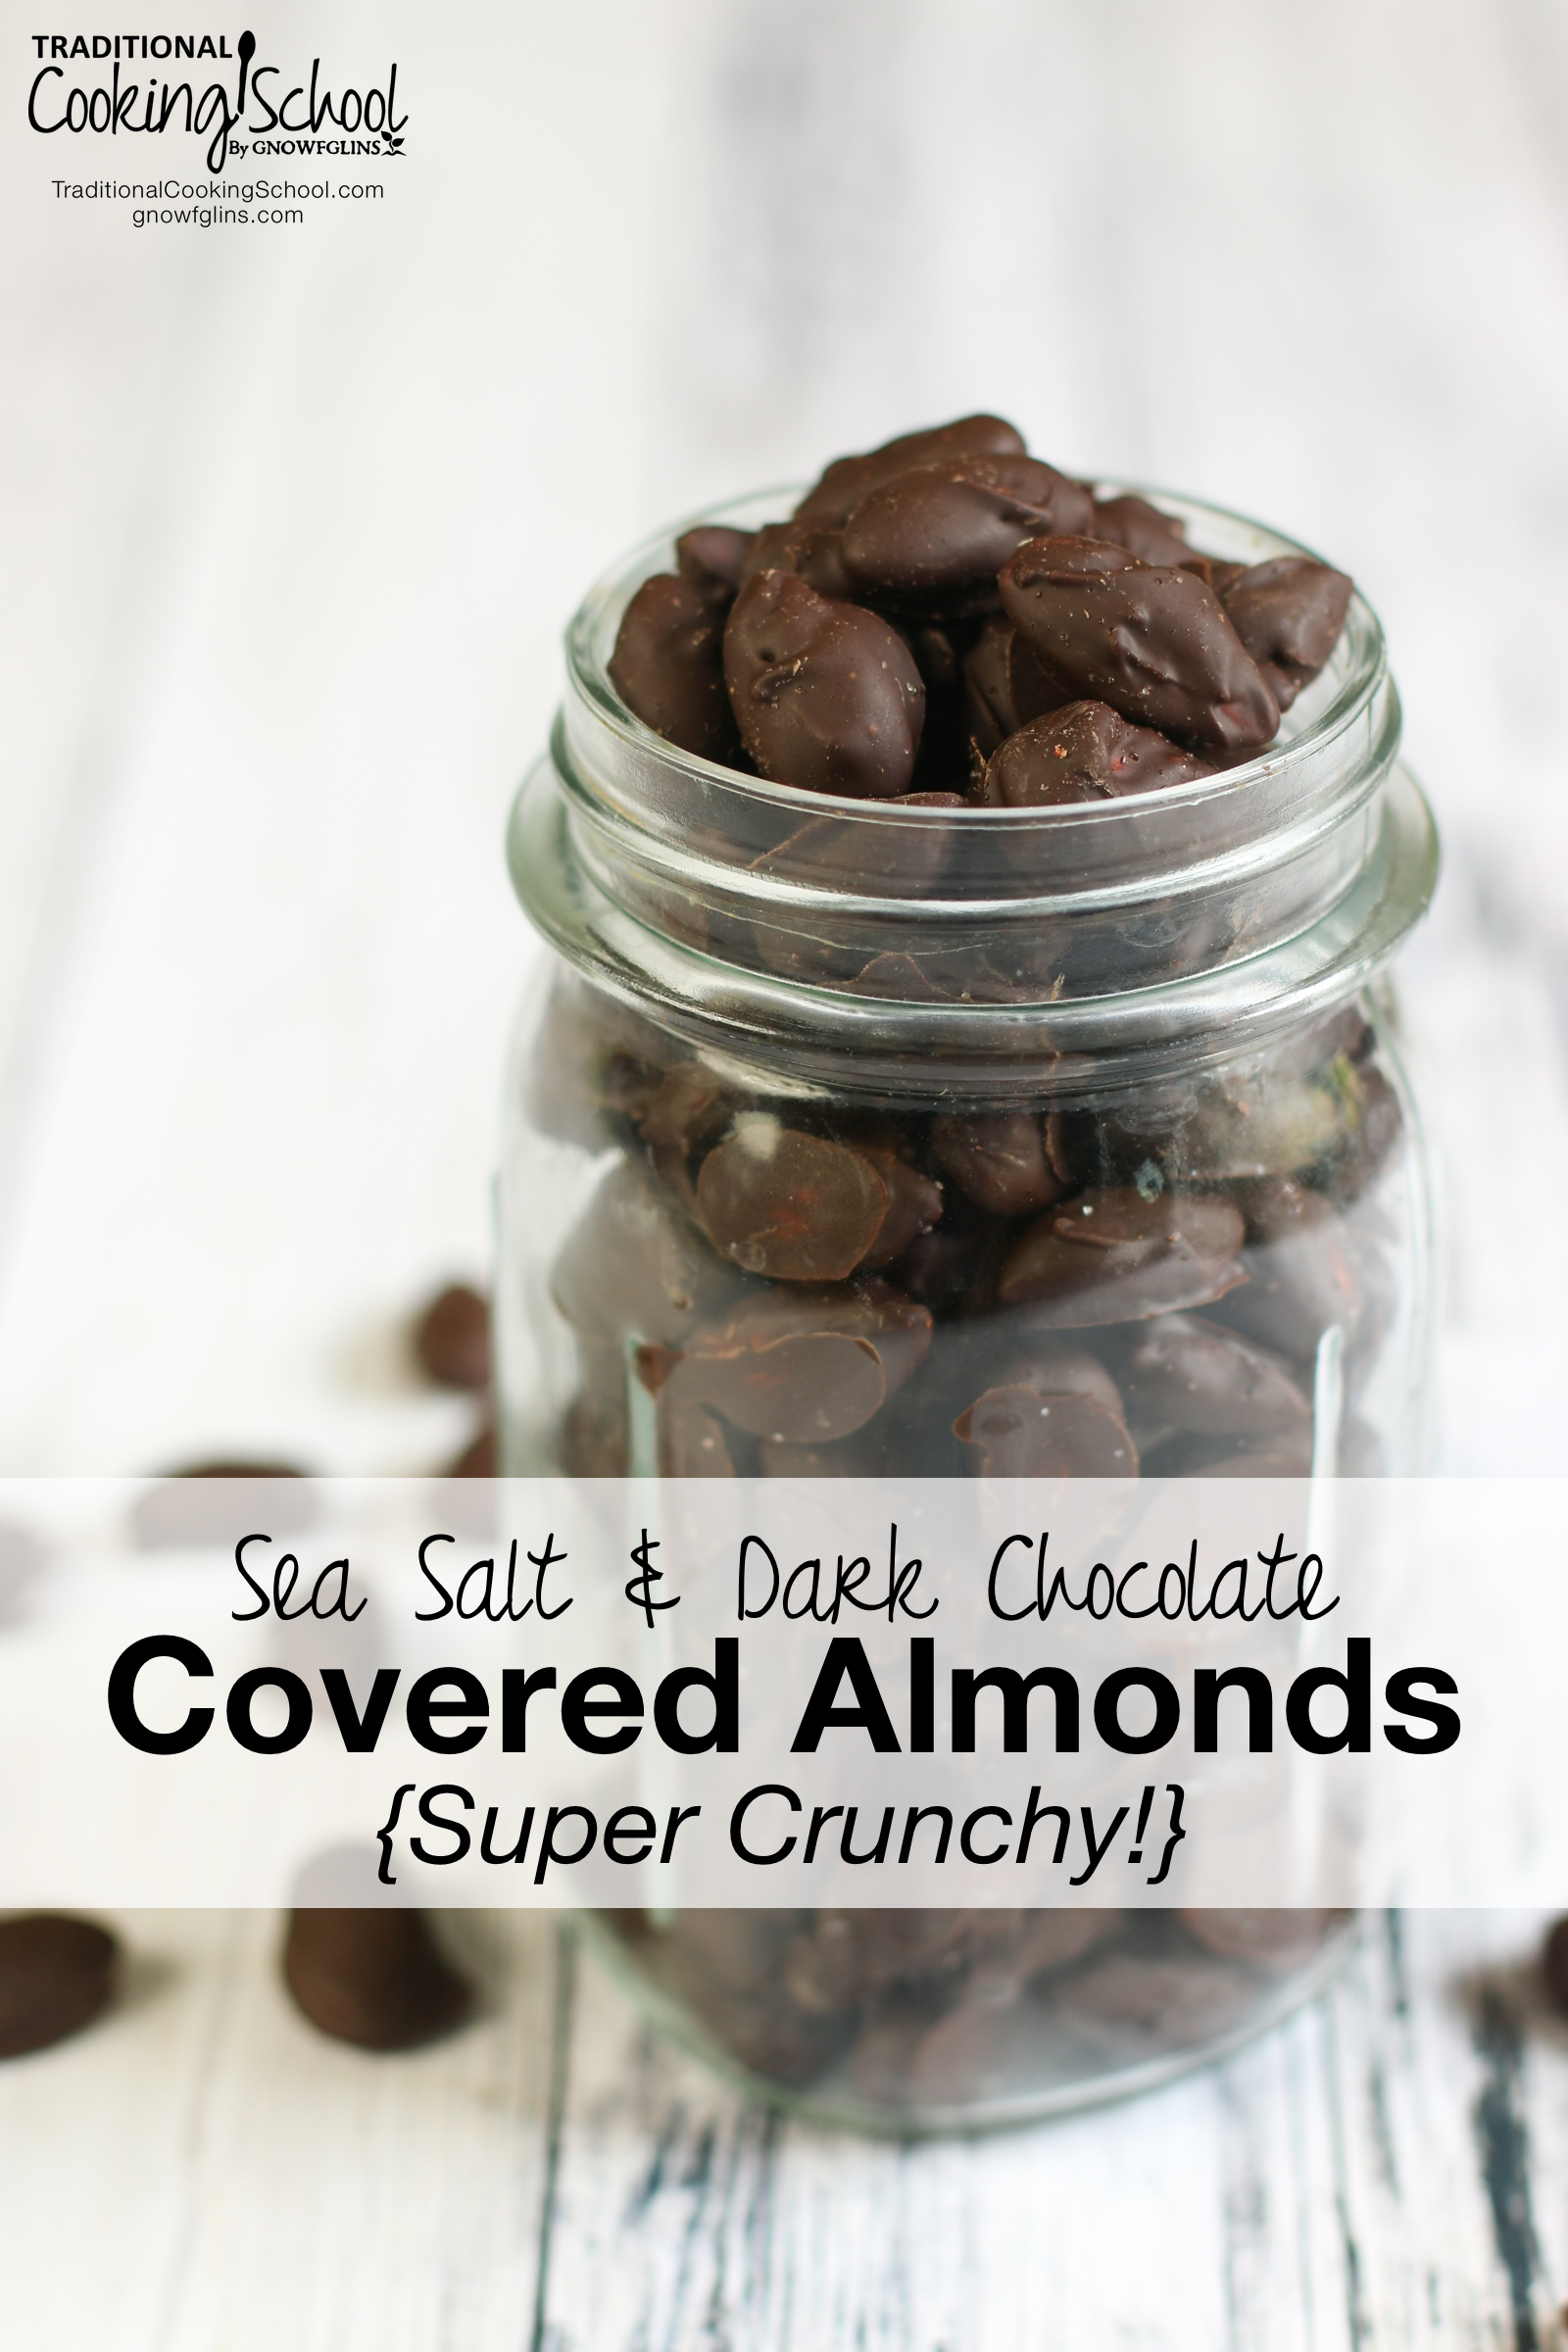 Sea Salt & Dark Chocolate Covered Almonds {Super Crunchy!} |